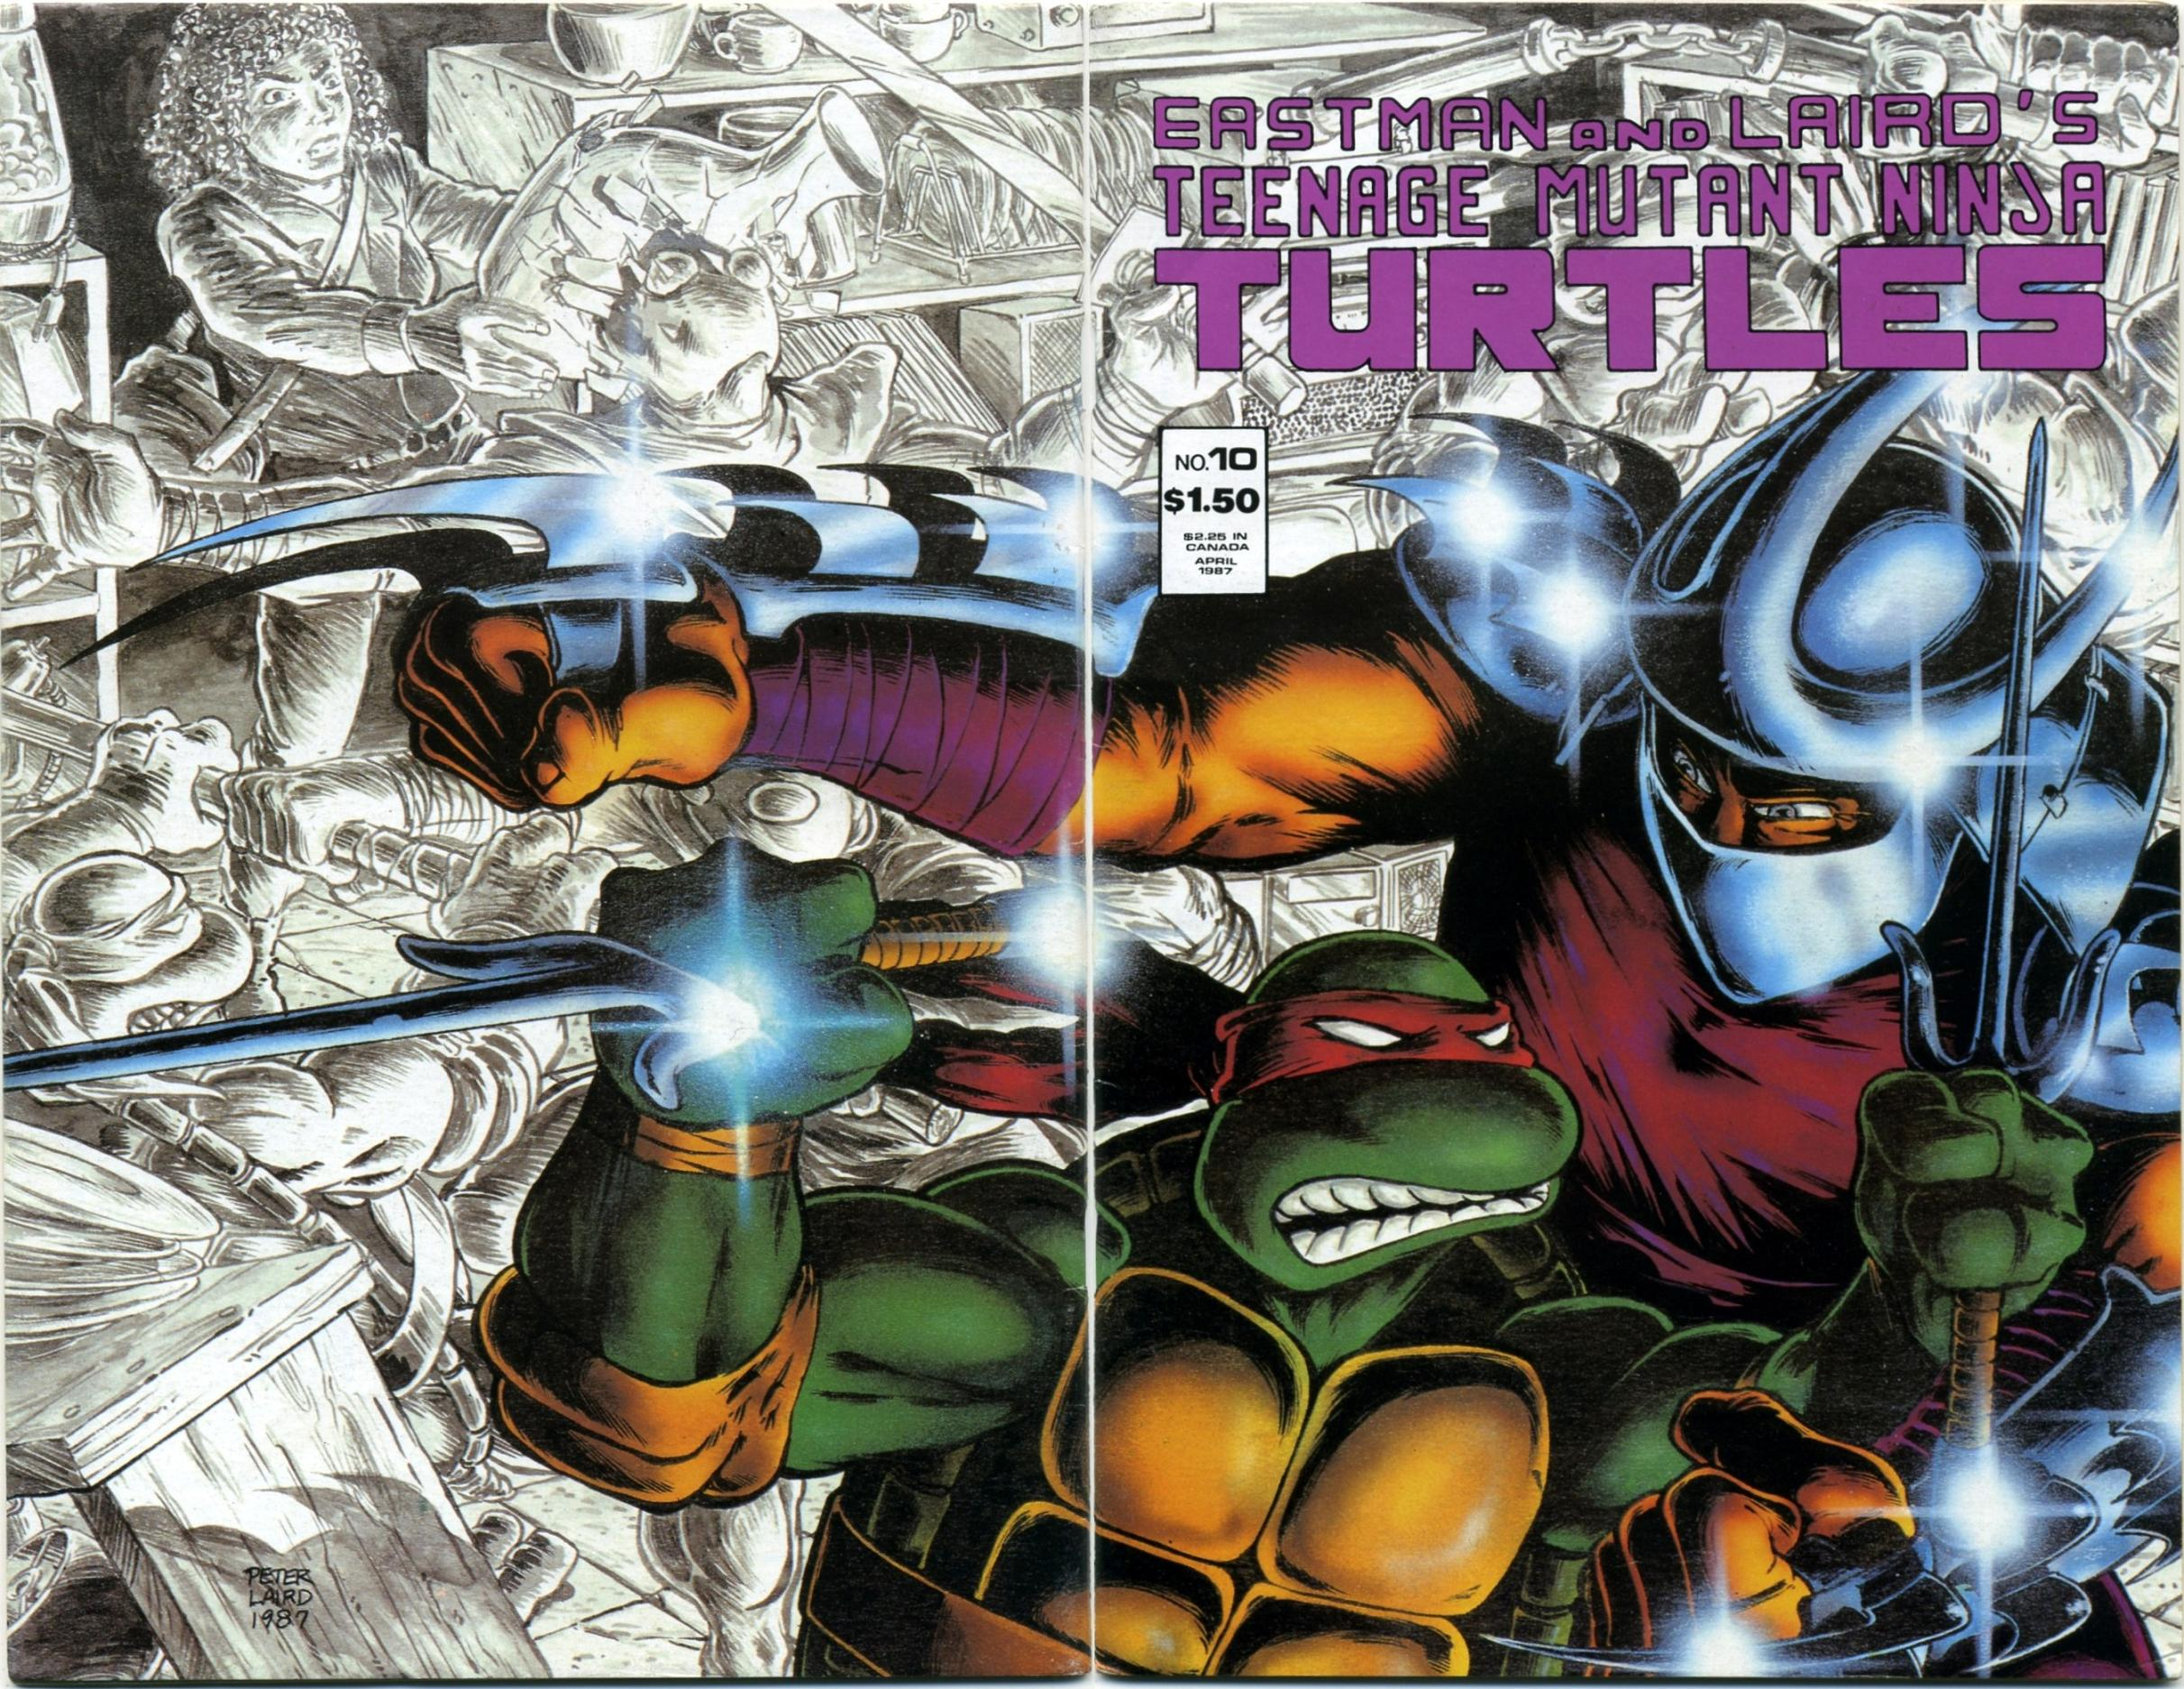 teenage mutant ninja turtles 10 -001